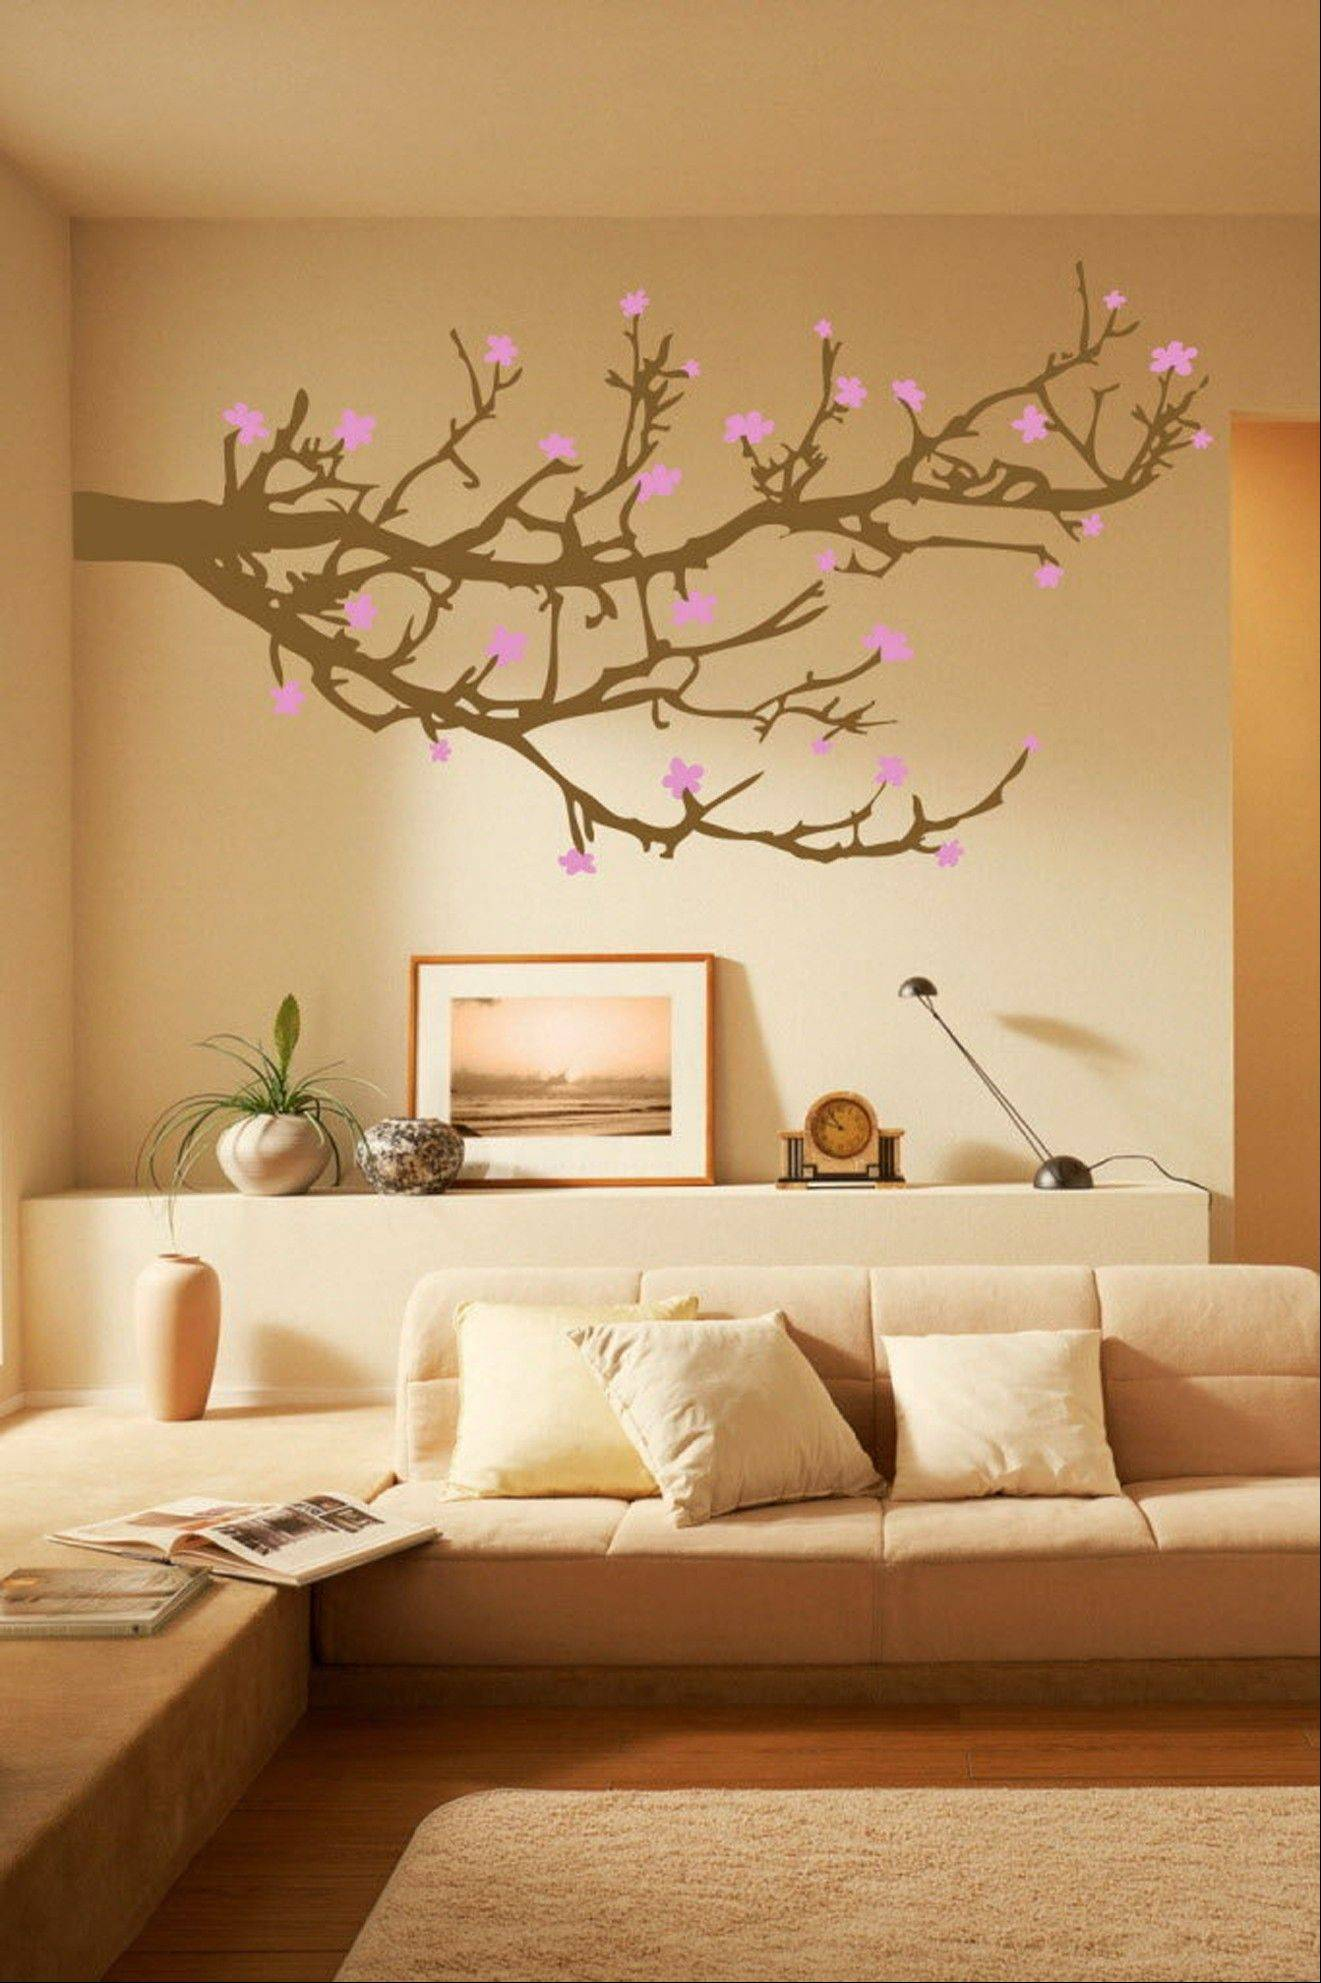 WALLTAT.com offers this Branches and Blossoms wall decal. The decals are growing in popularity because they can easily be installed and removed without damaging walls or paint.